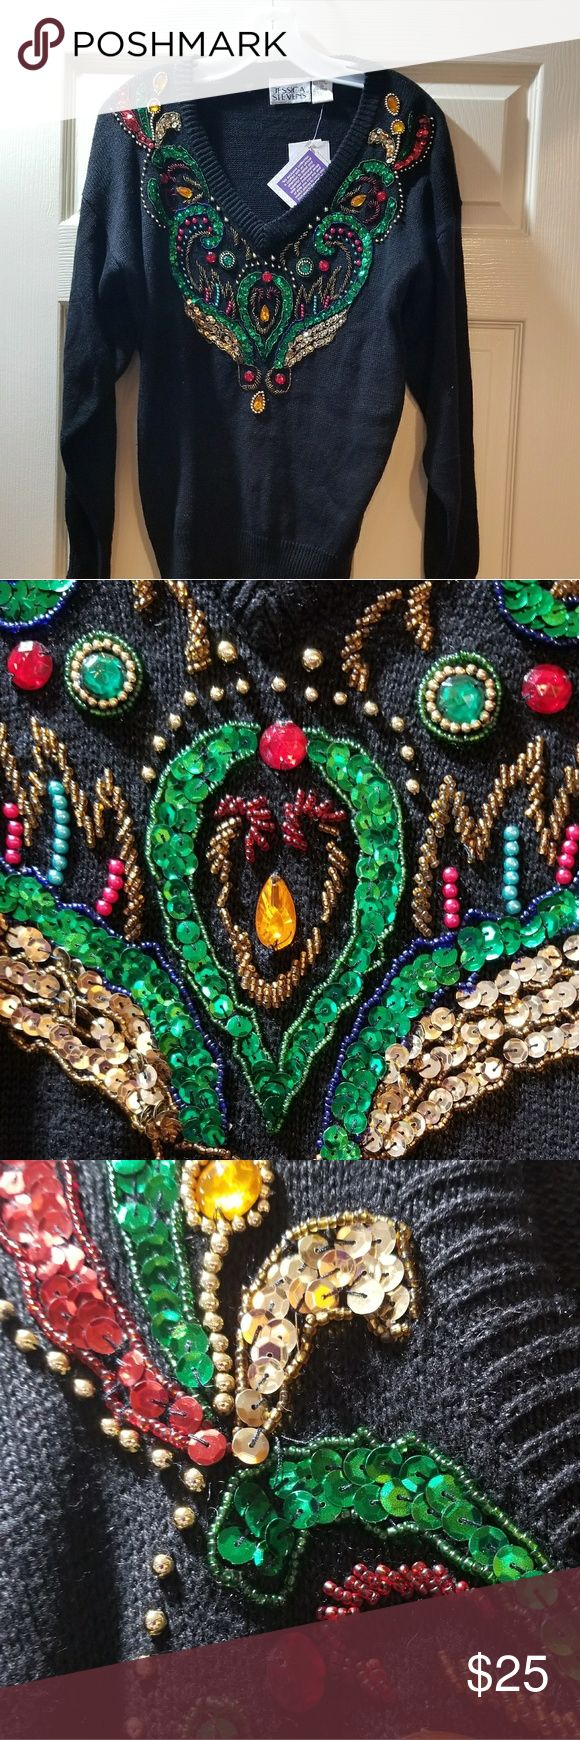 """Jessica Stevens Vintage NWT The ultimate glammed-up Holiday Sweater! How did this fall to the back of my closet without ever being worn? There's beading, jewels, sequins, color--all on a black ground. Here's the ONE you need for all those """"Wear Your Christmas Sweater"""" invites 🌲🌲🌲 Jessica Simpson Sweaters V-Necks"""